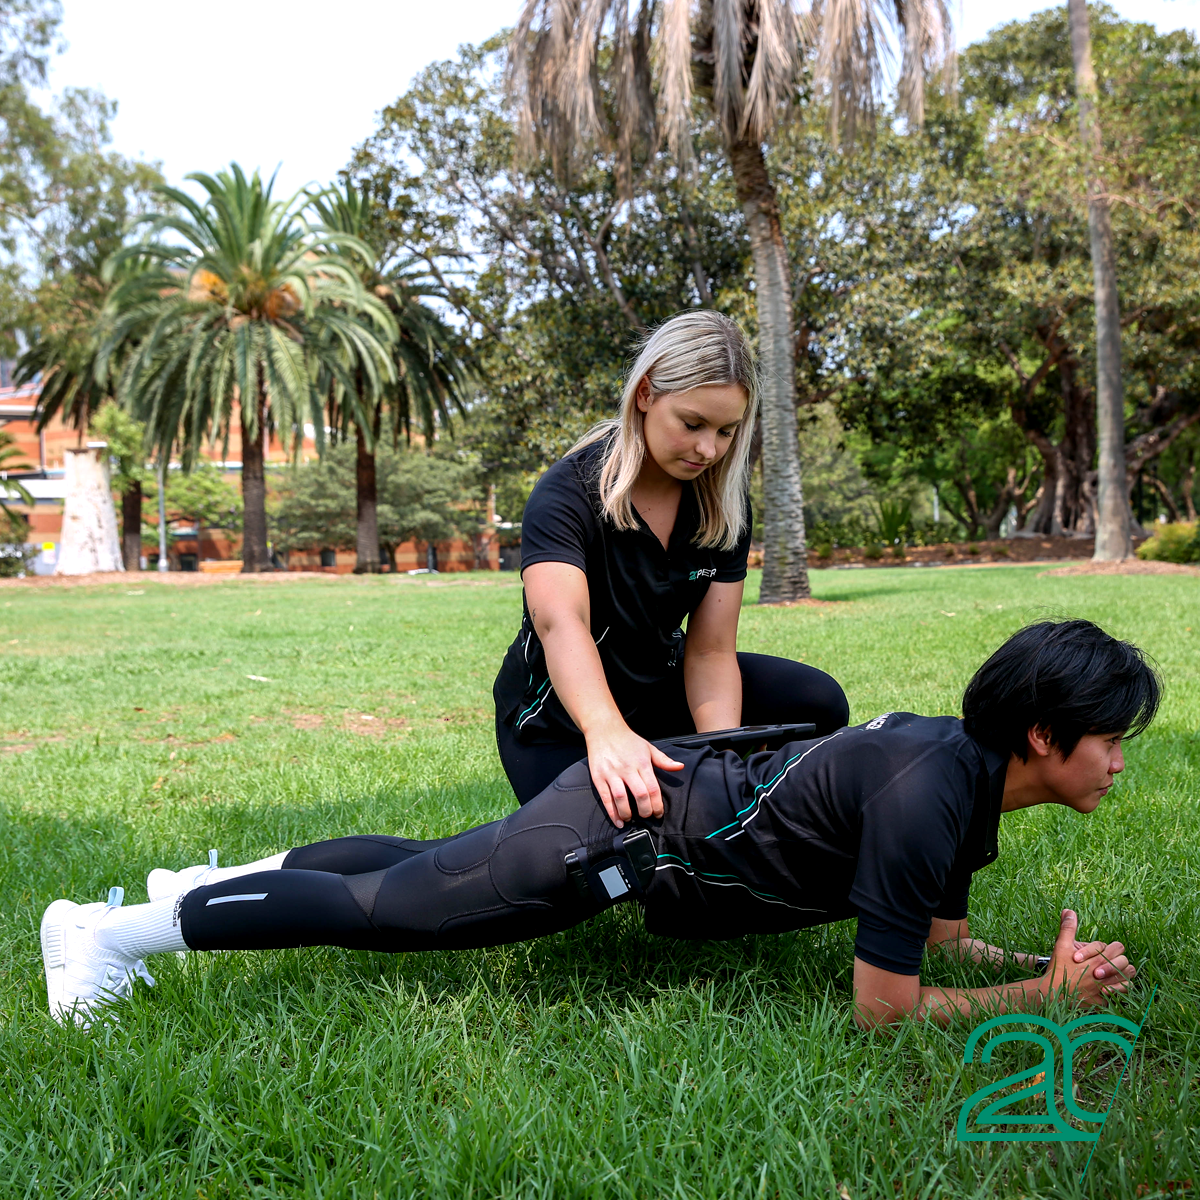 Woman Doing Core Exercises with a Personal Trainer Using 20PerFit's EMS Technology